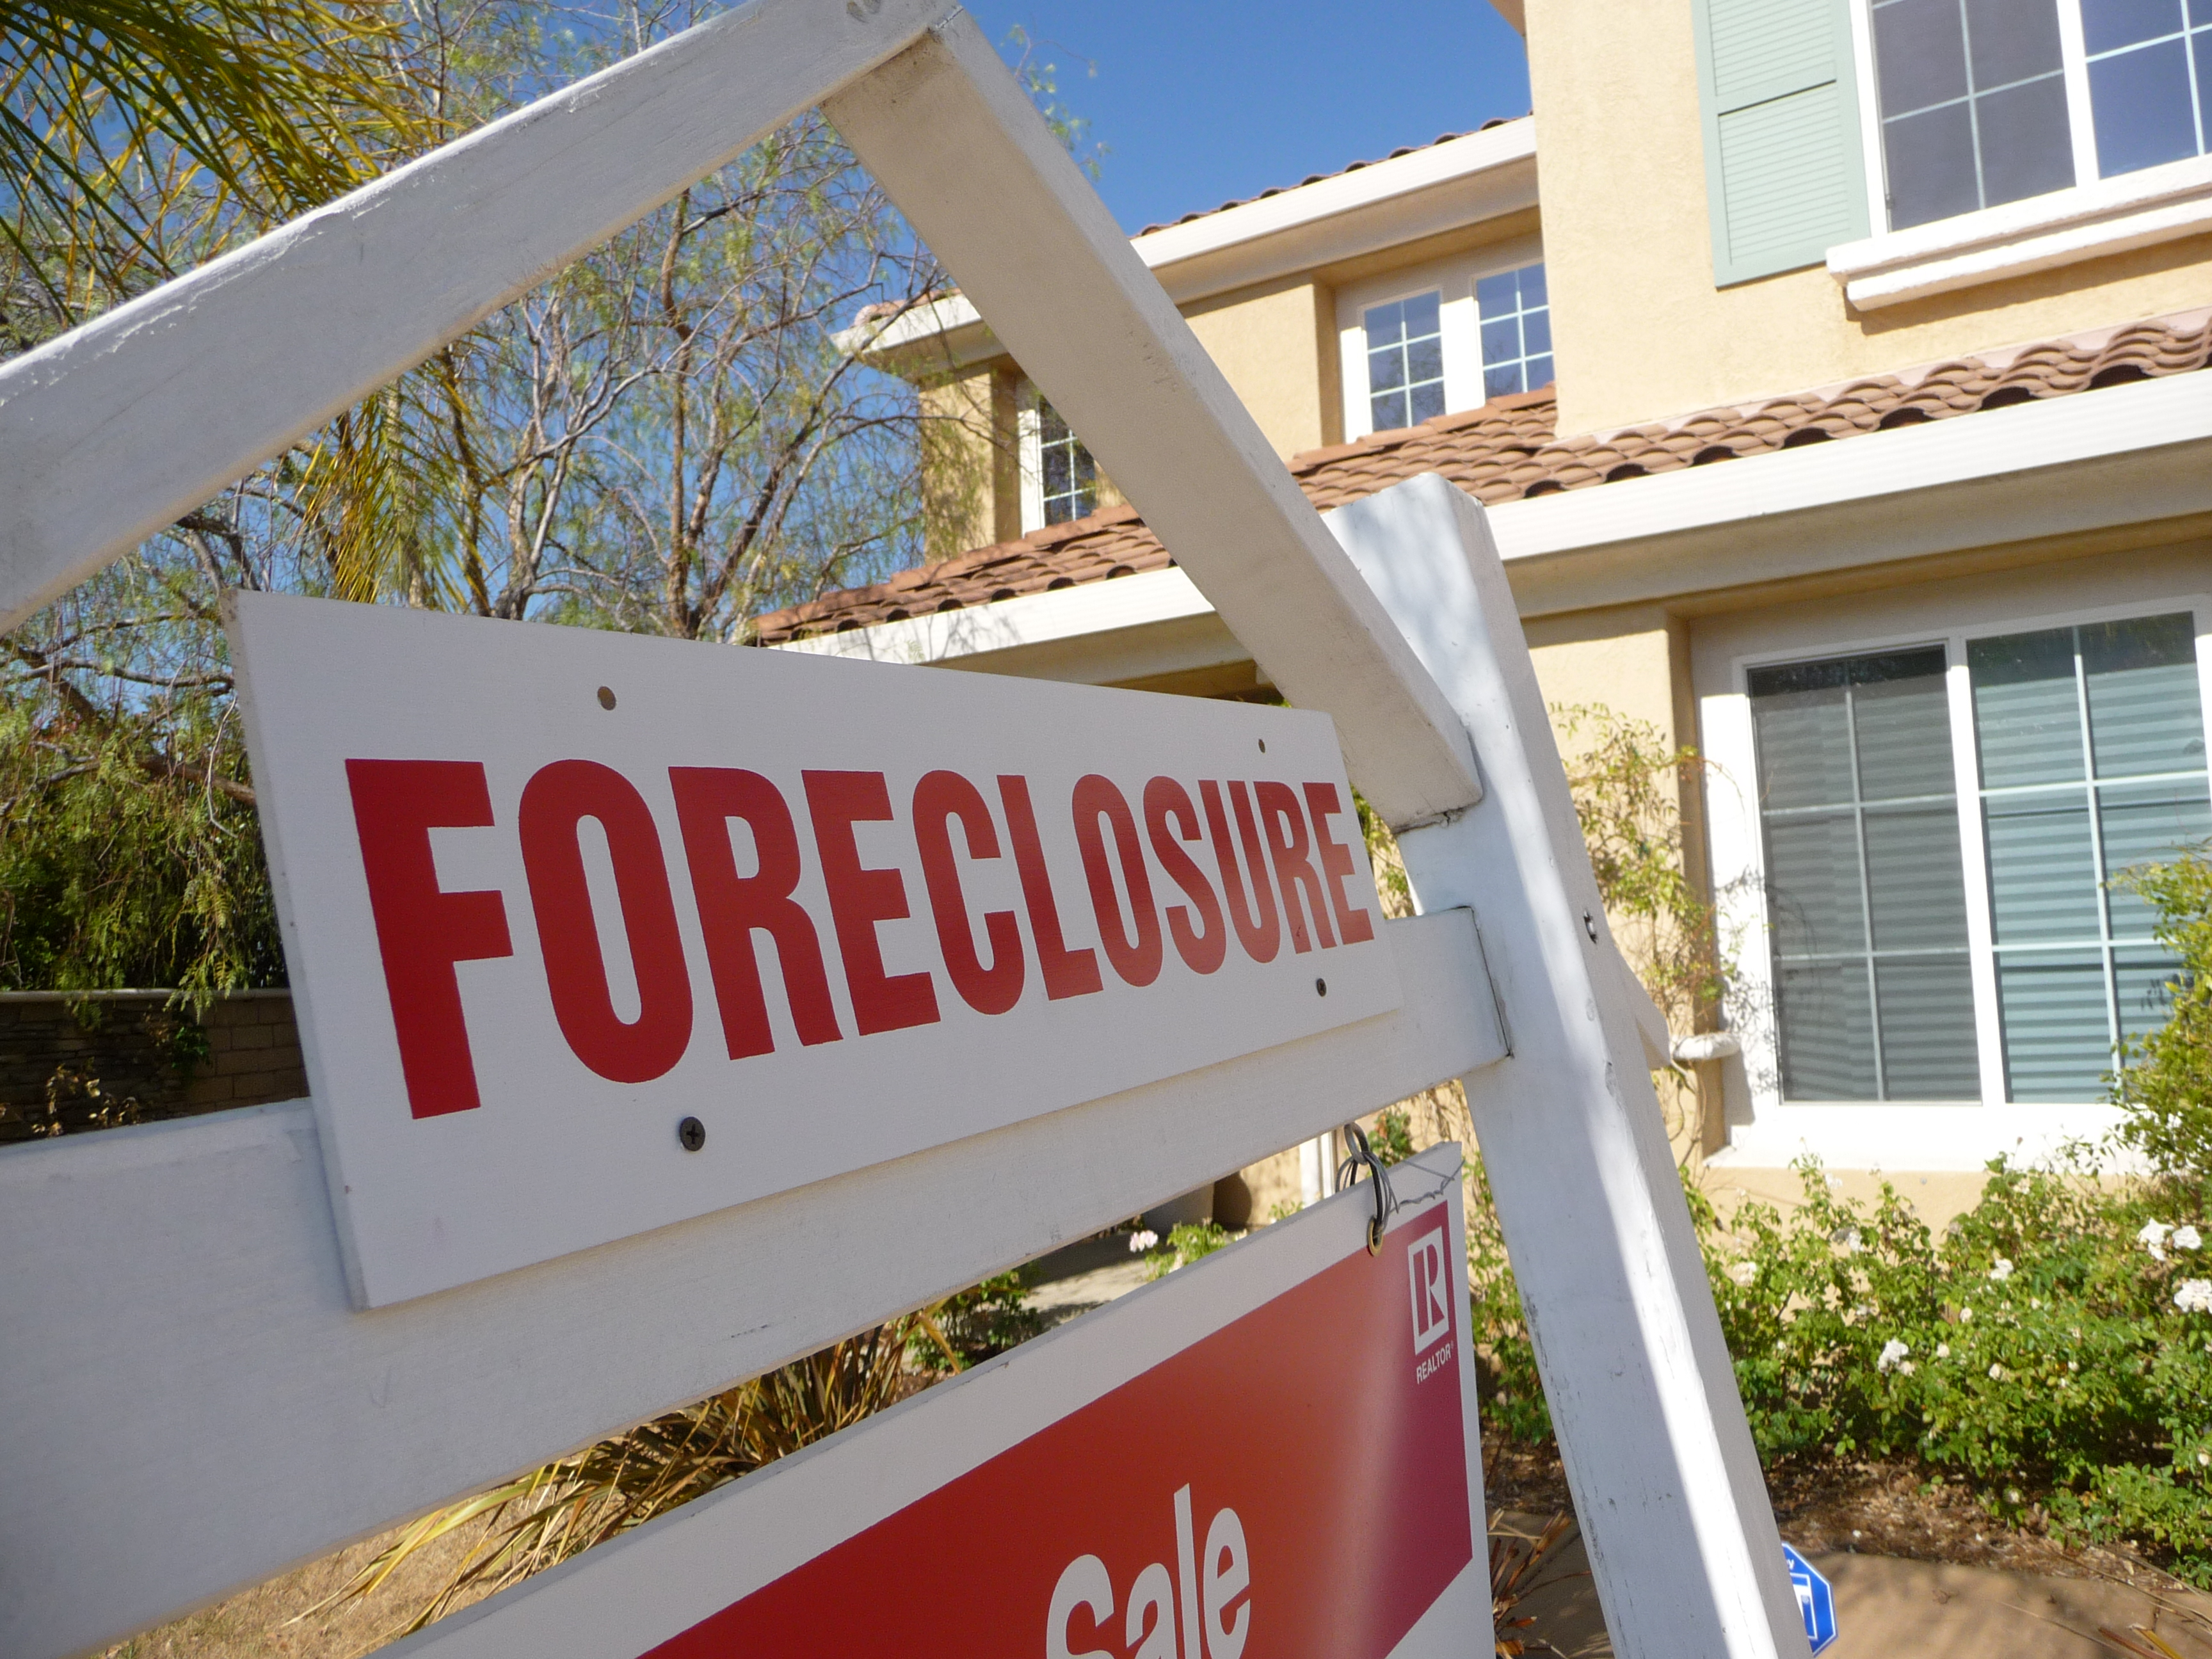 buying a foreclosure doesn't have to be risky